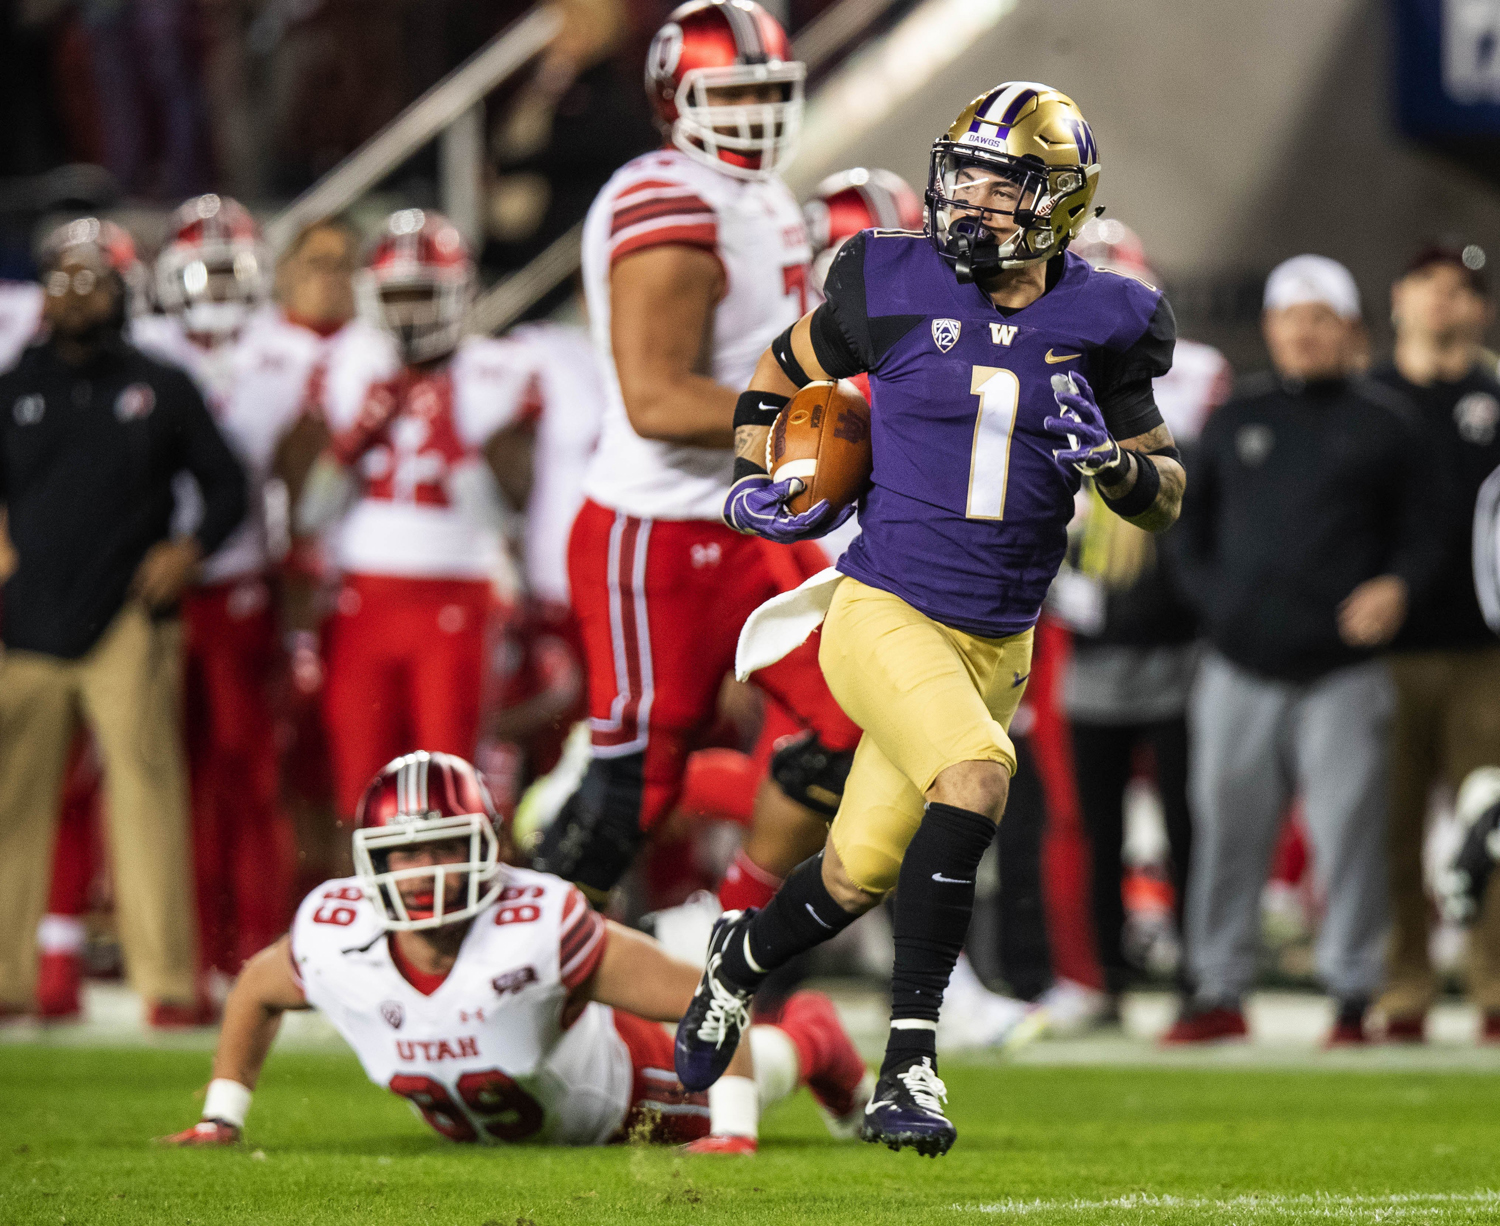 Byron Murphy returns the interception 66 yards for a touchdown in the third quarter against Utah Nov. 30, 2018, in Santa Clara, California. The University of Washington beat the University of Utah 10-3.